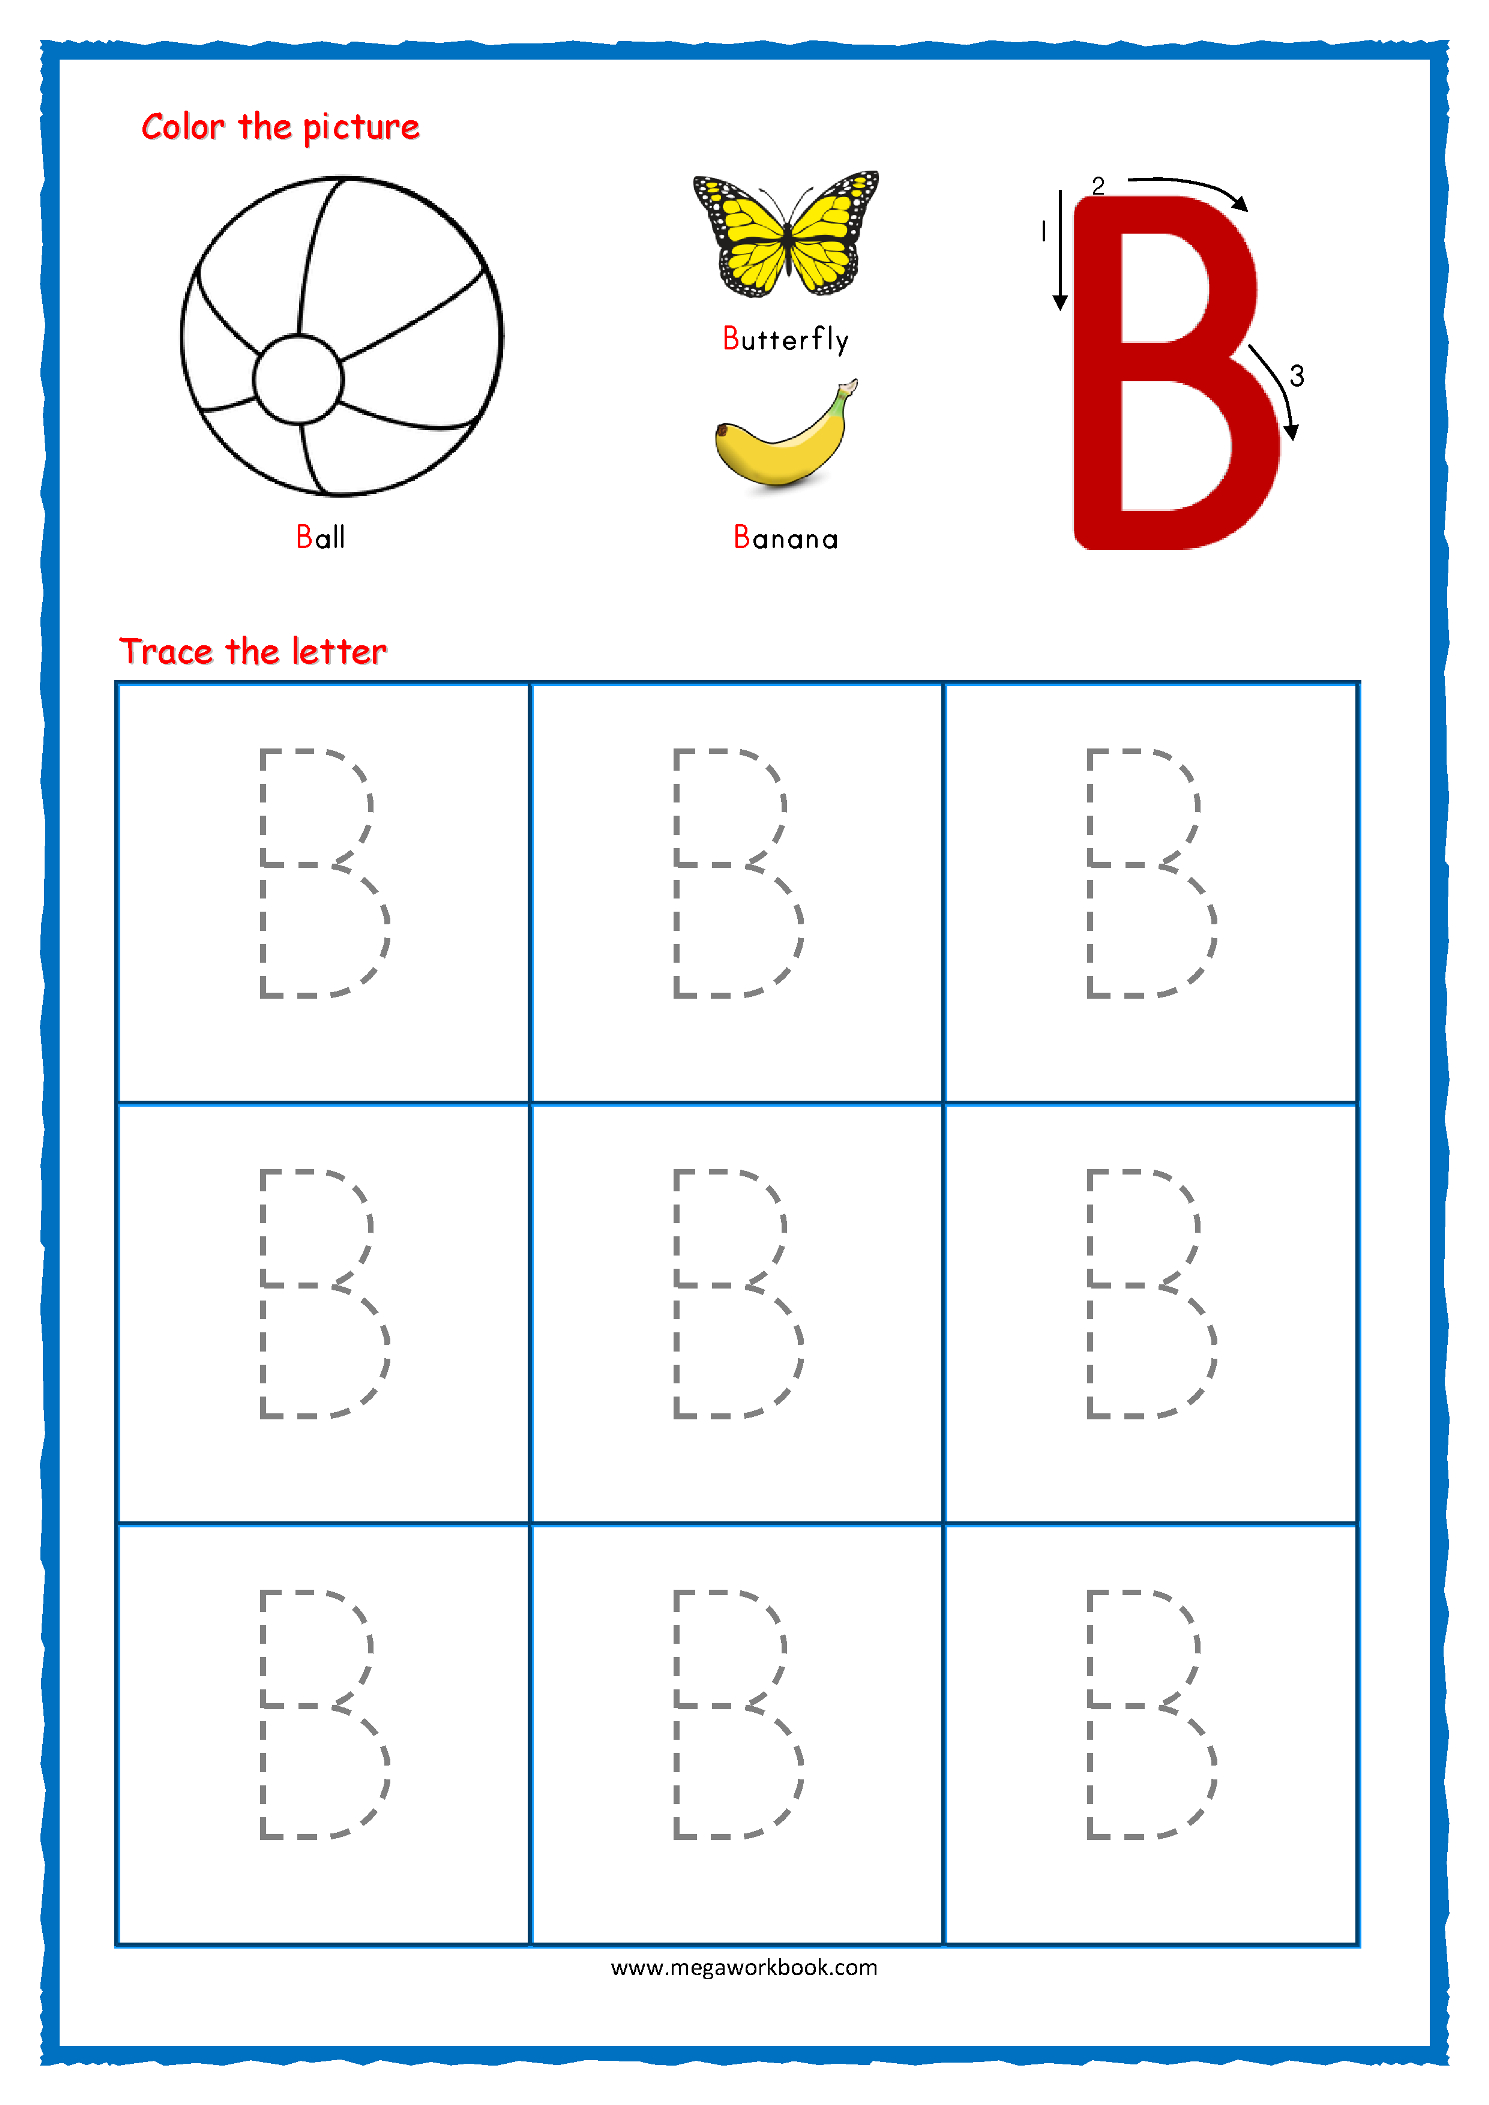 Tracing Letters - Alphabet Tracing - Capital Letters intended for Alphabet Tracing Sheet Free